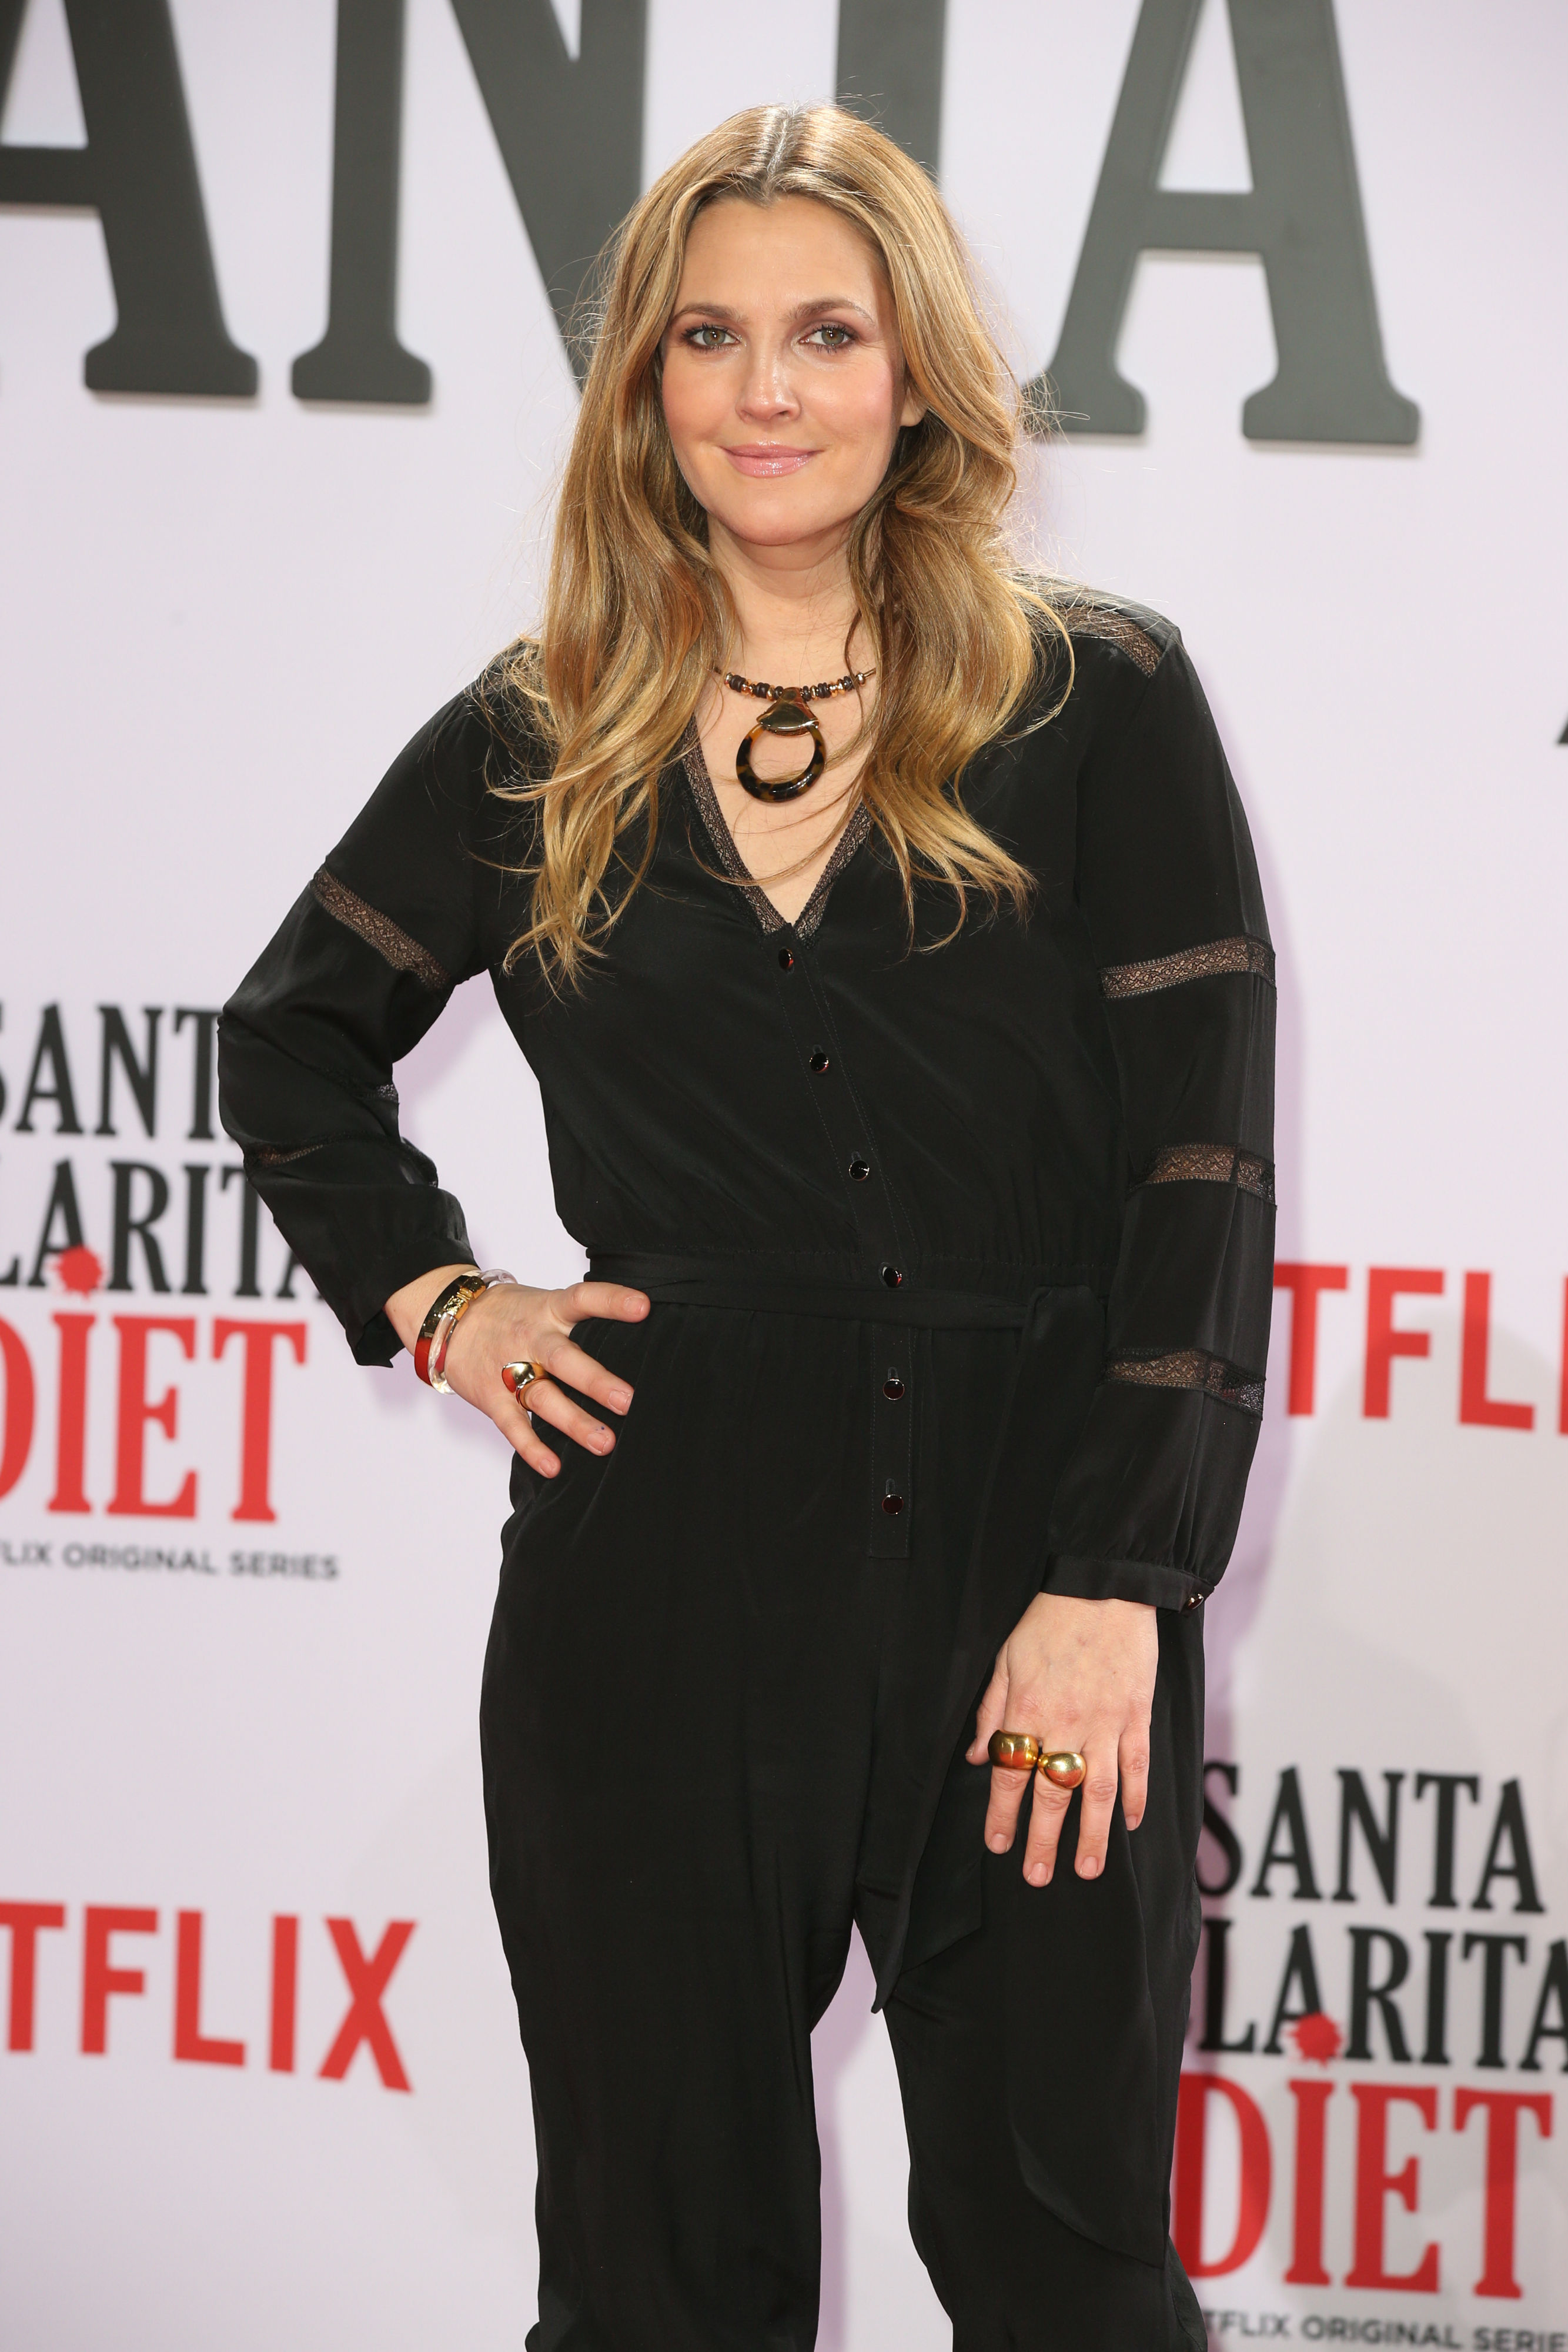 Drew Barrymore I Dont Want To Watch Dark Shit Be In And Put Out There Hate Negativity